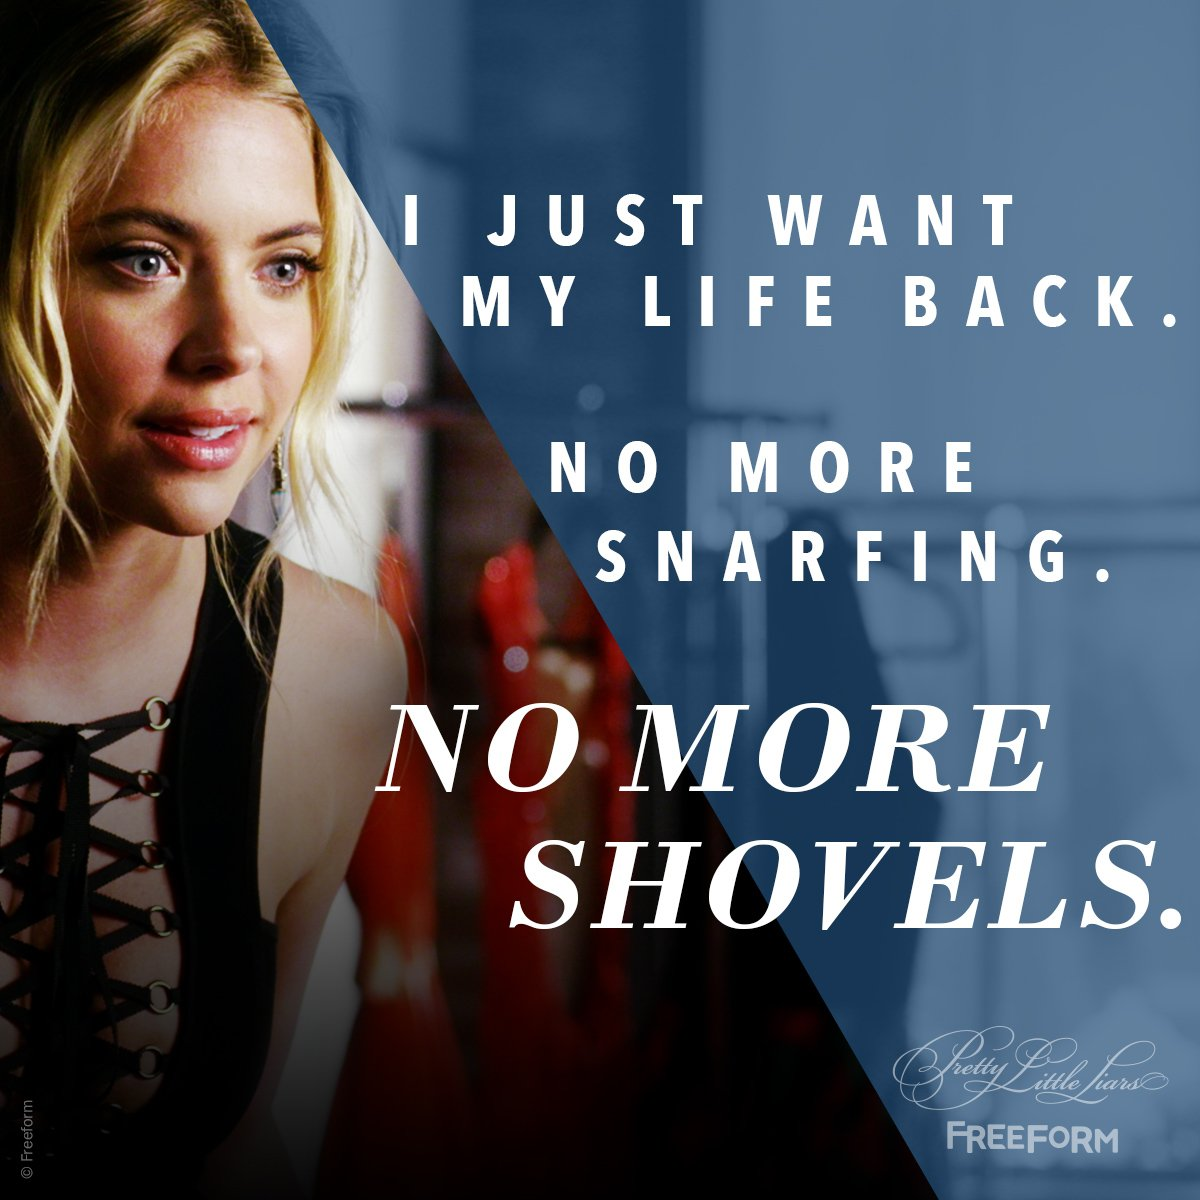 The life before A, right? #PrettyLittleLiars https://t.co/rZemIs1act